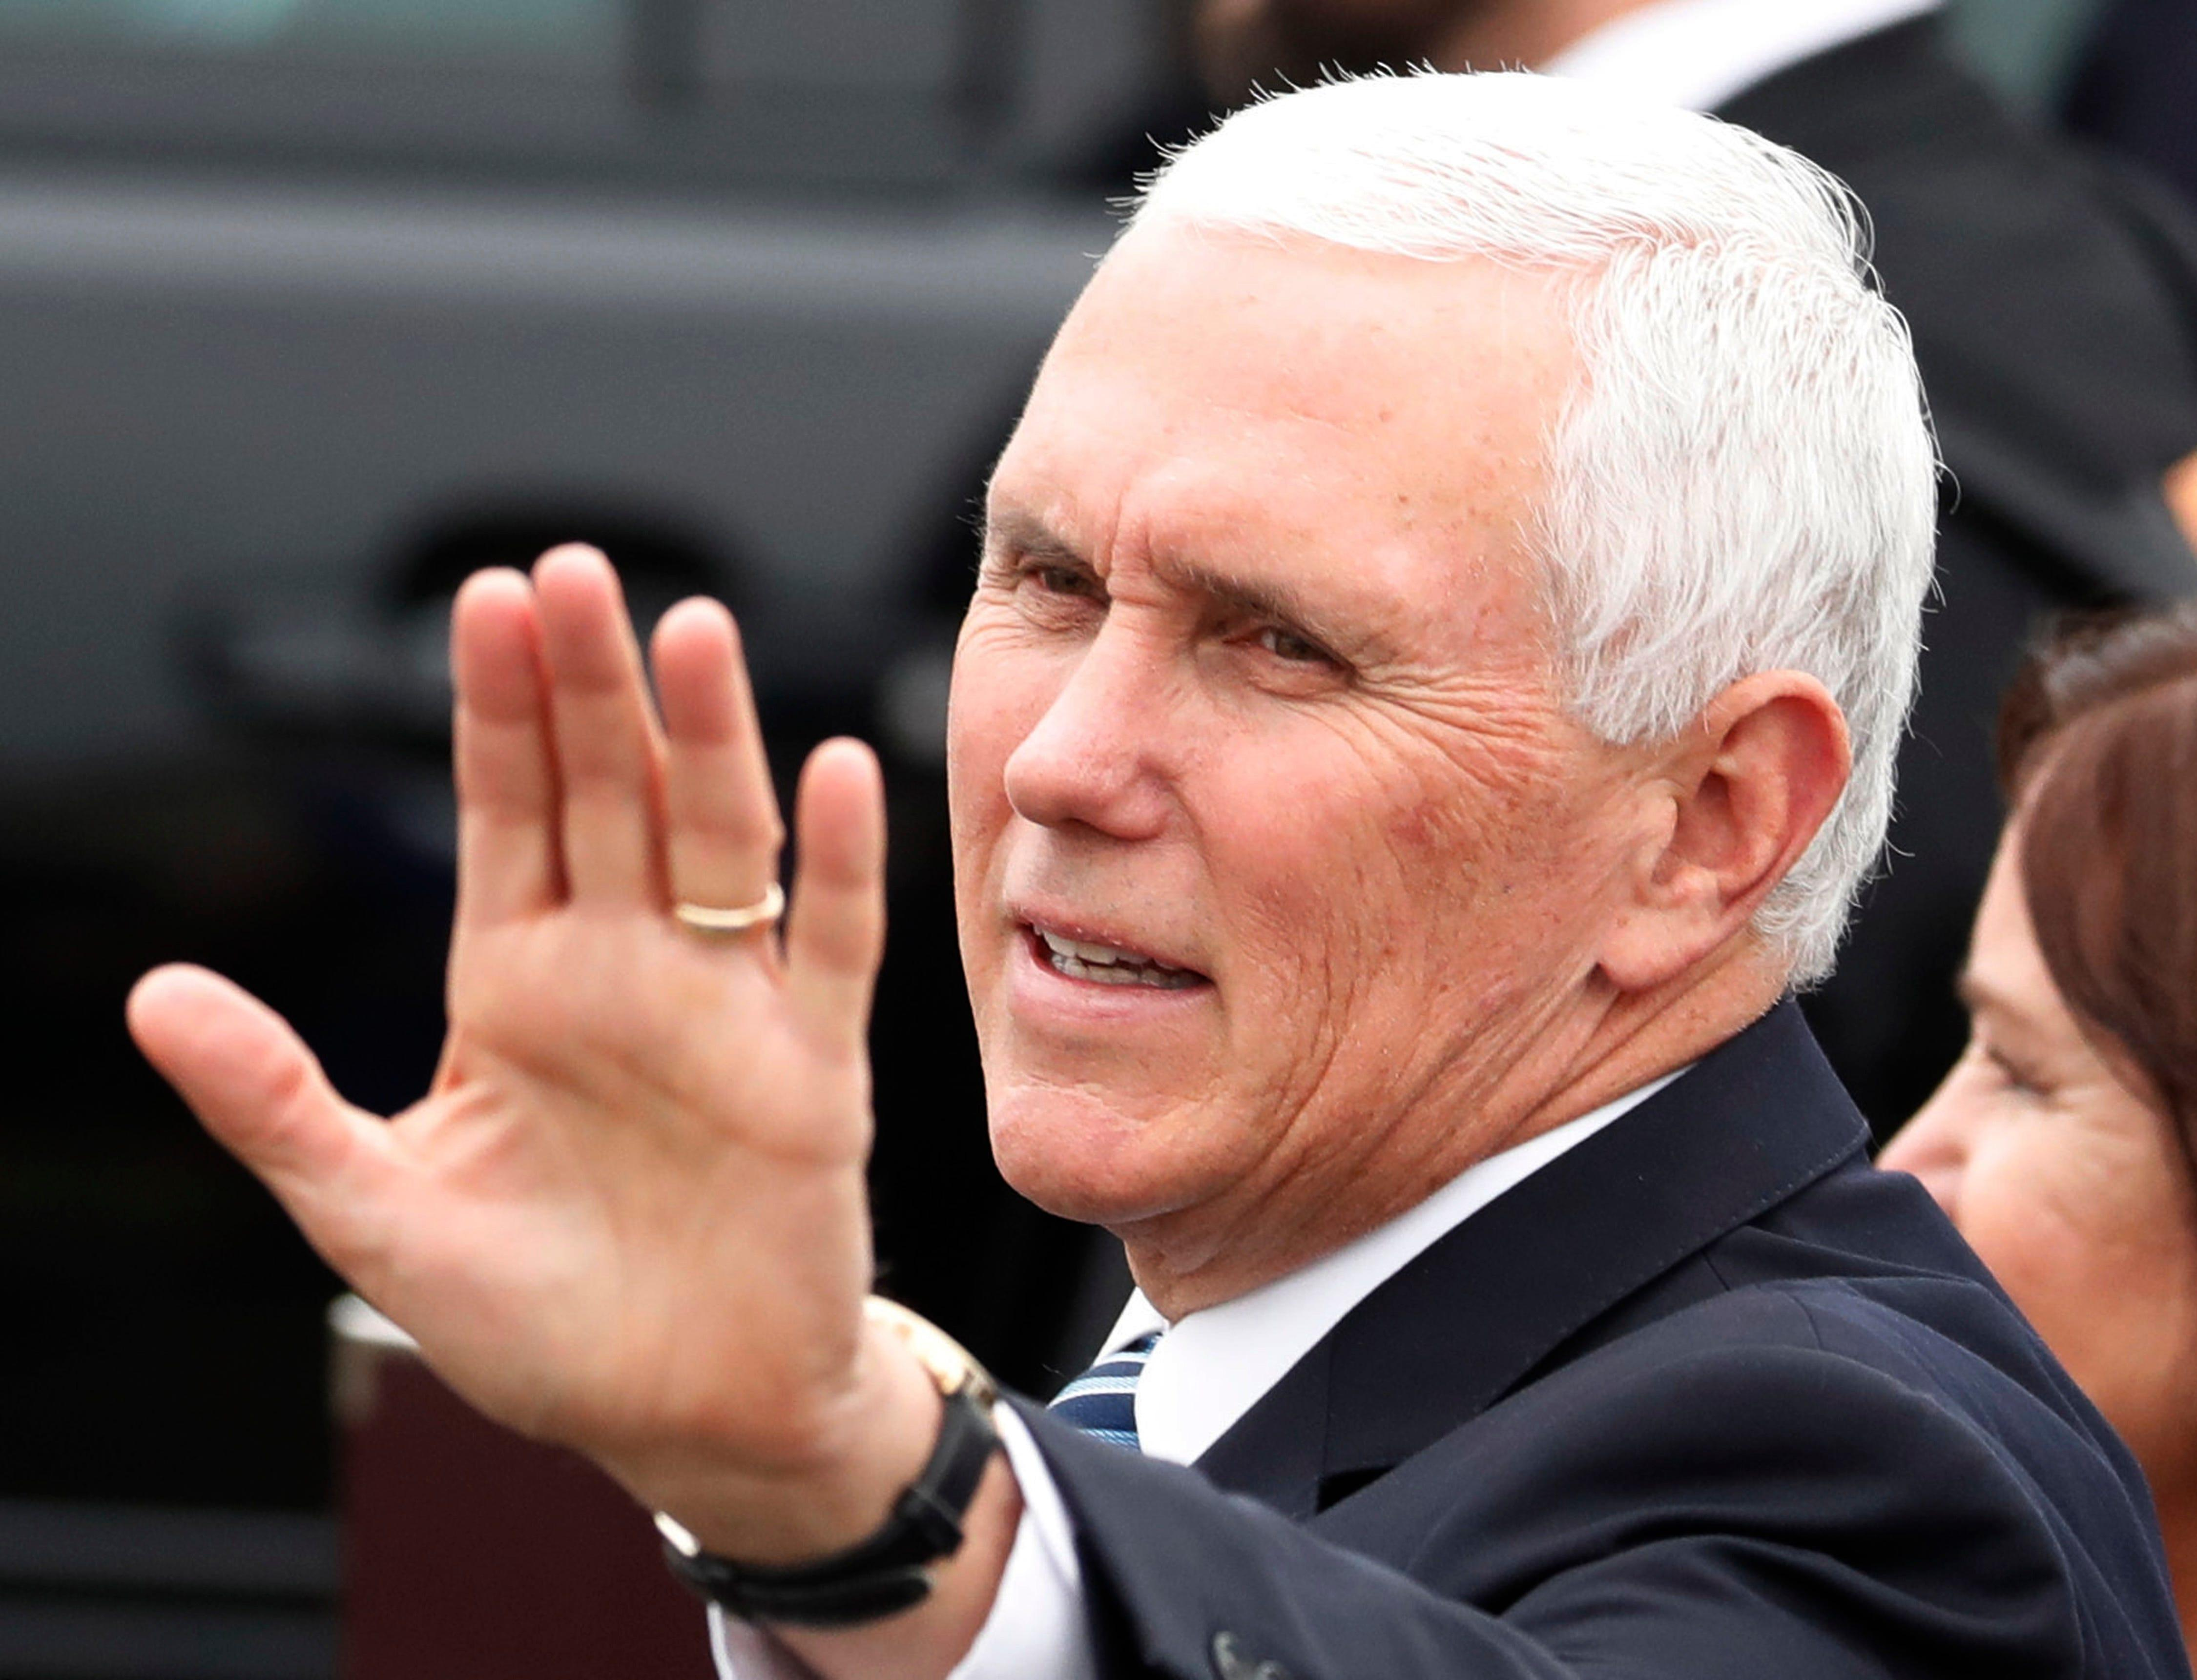 Pence Abruptly Cancels New Hampshire Trip, Returns to White House